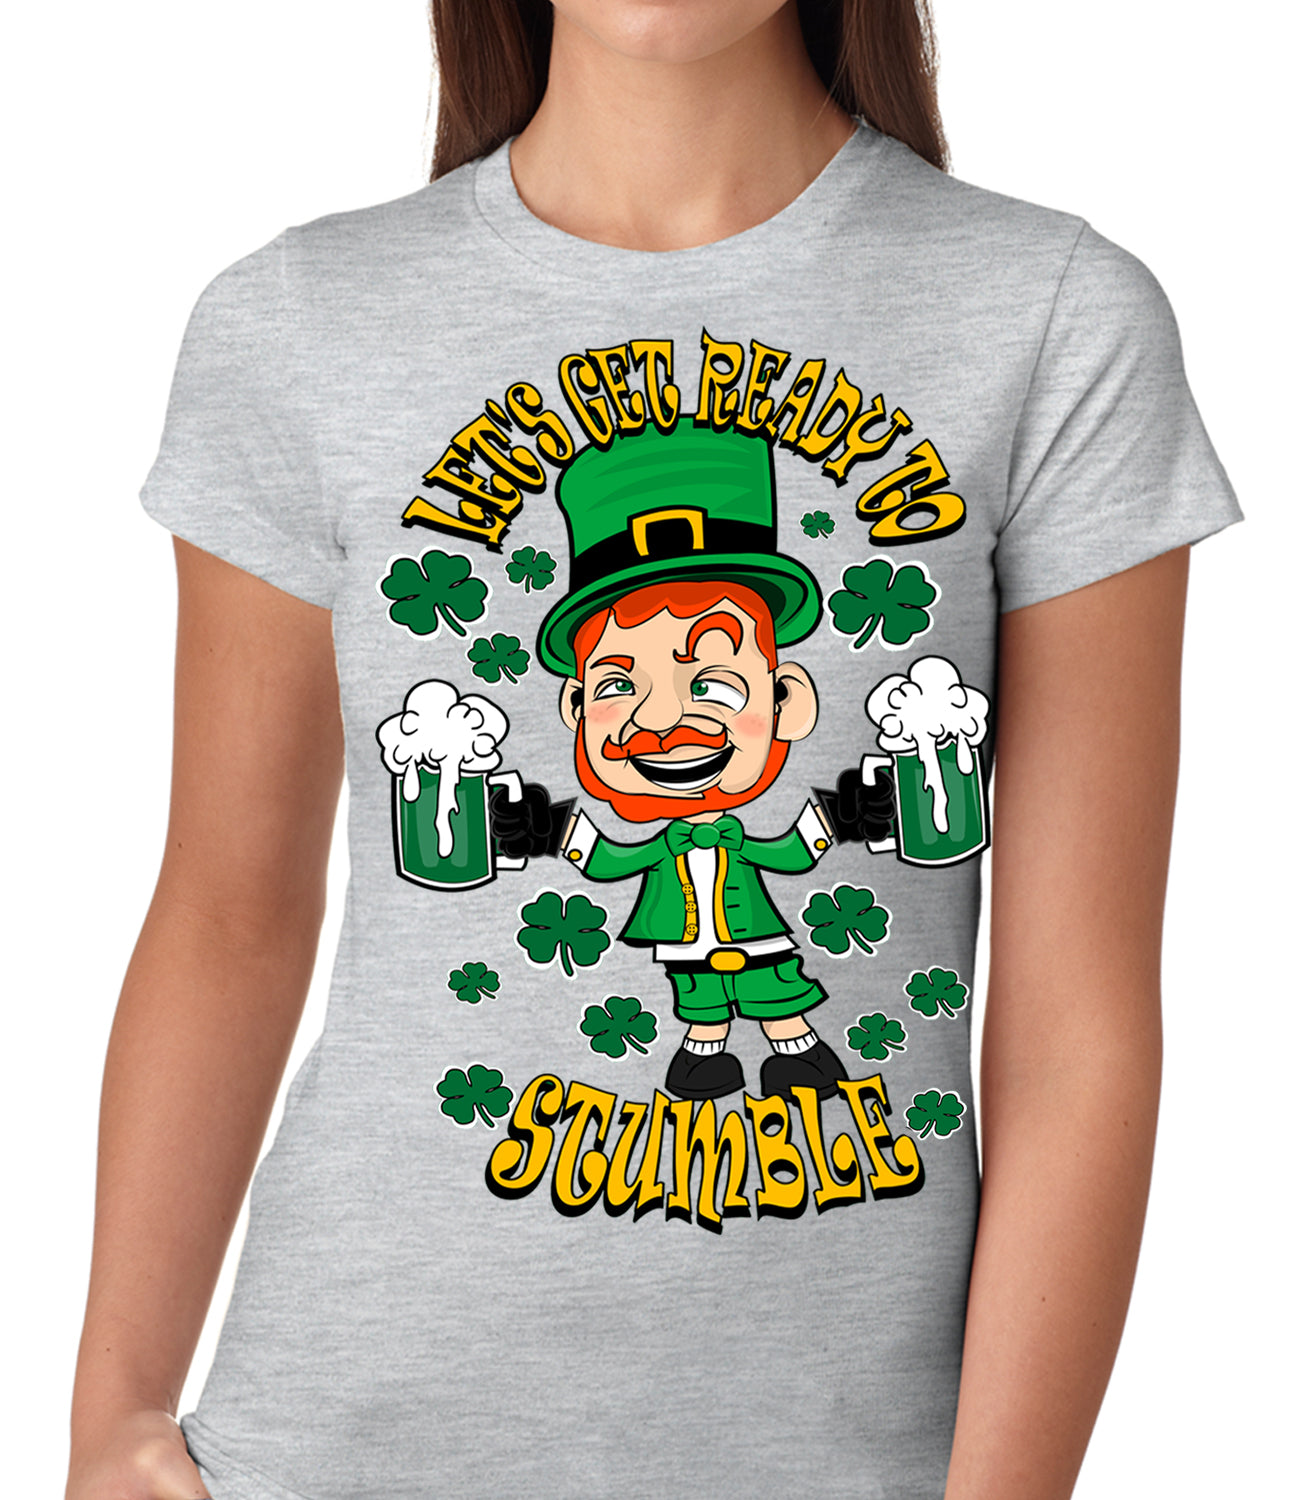 Leprechaun Let's Get Ready To Stumble Girls T-shirt